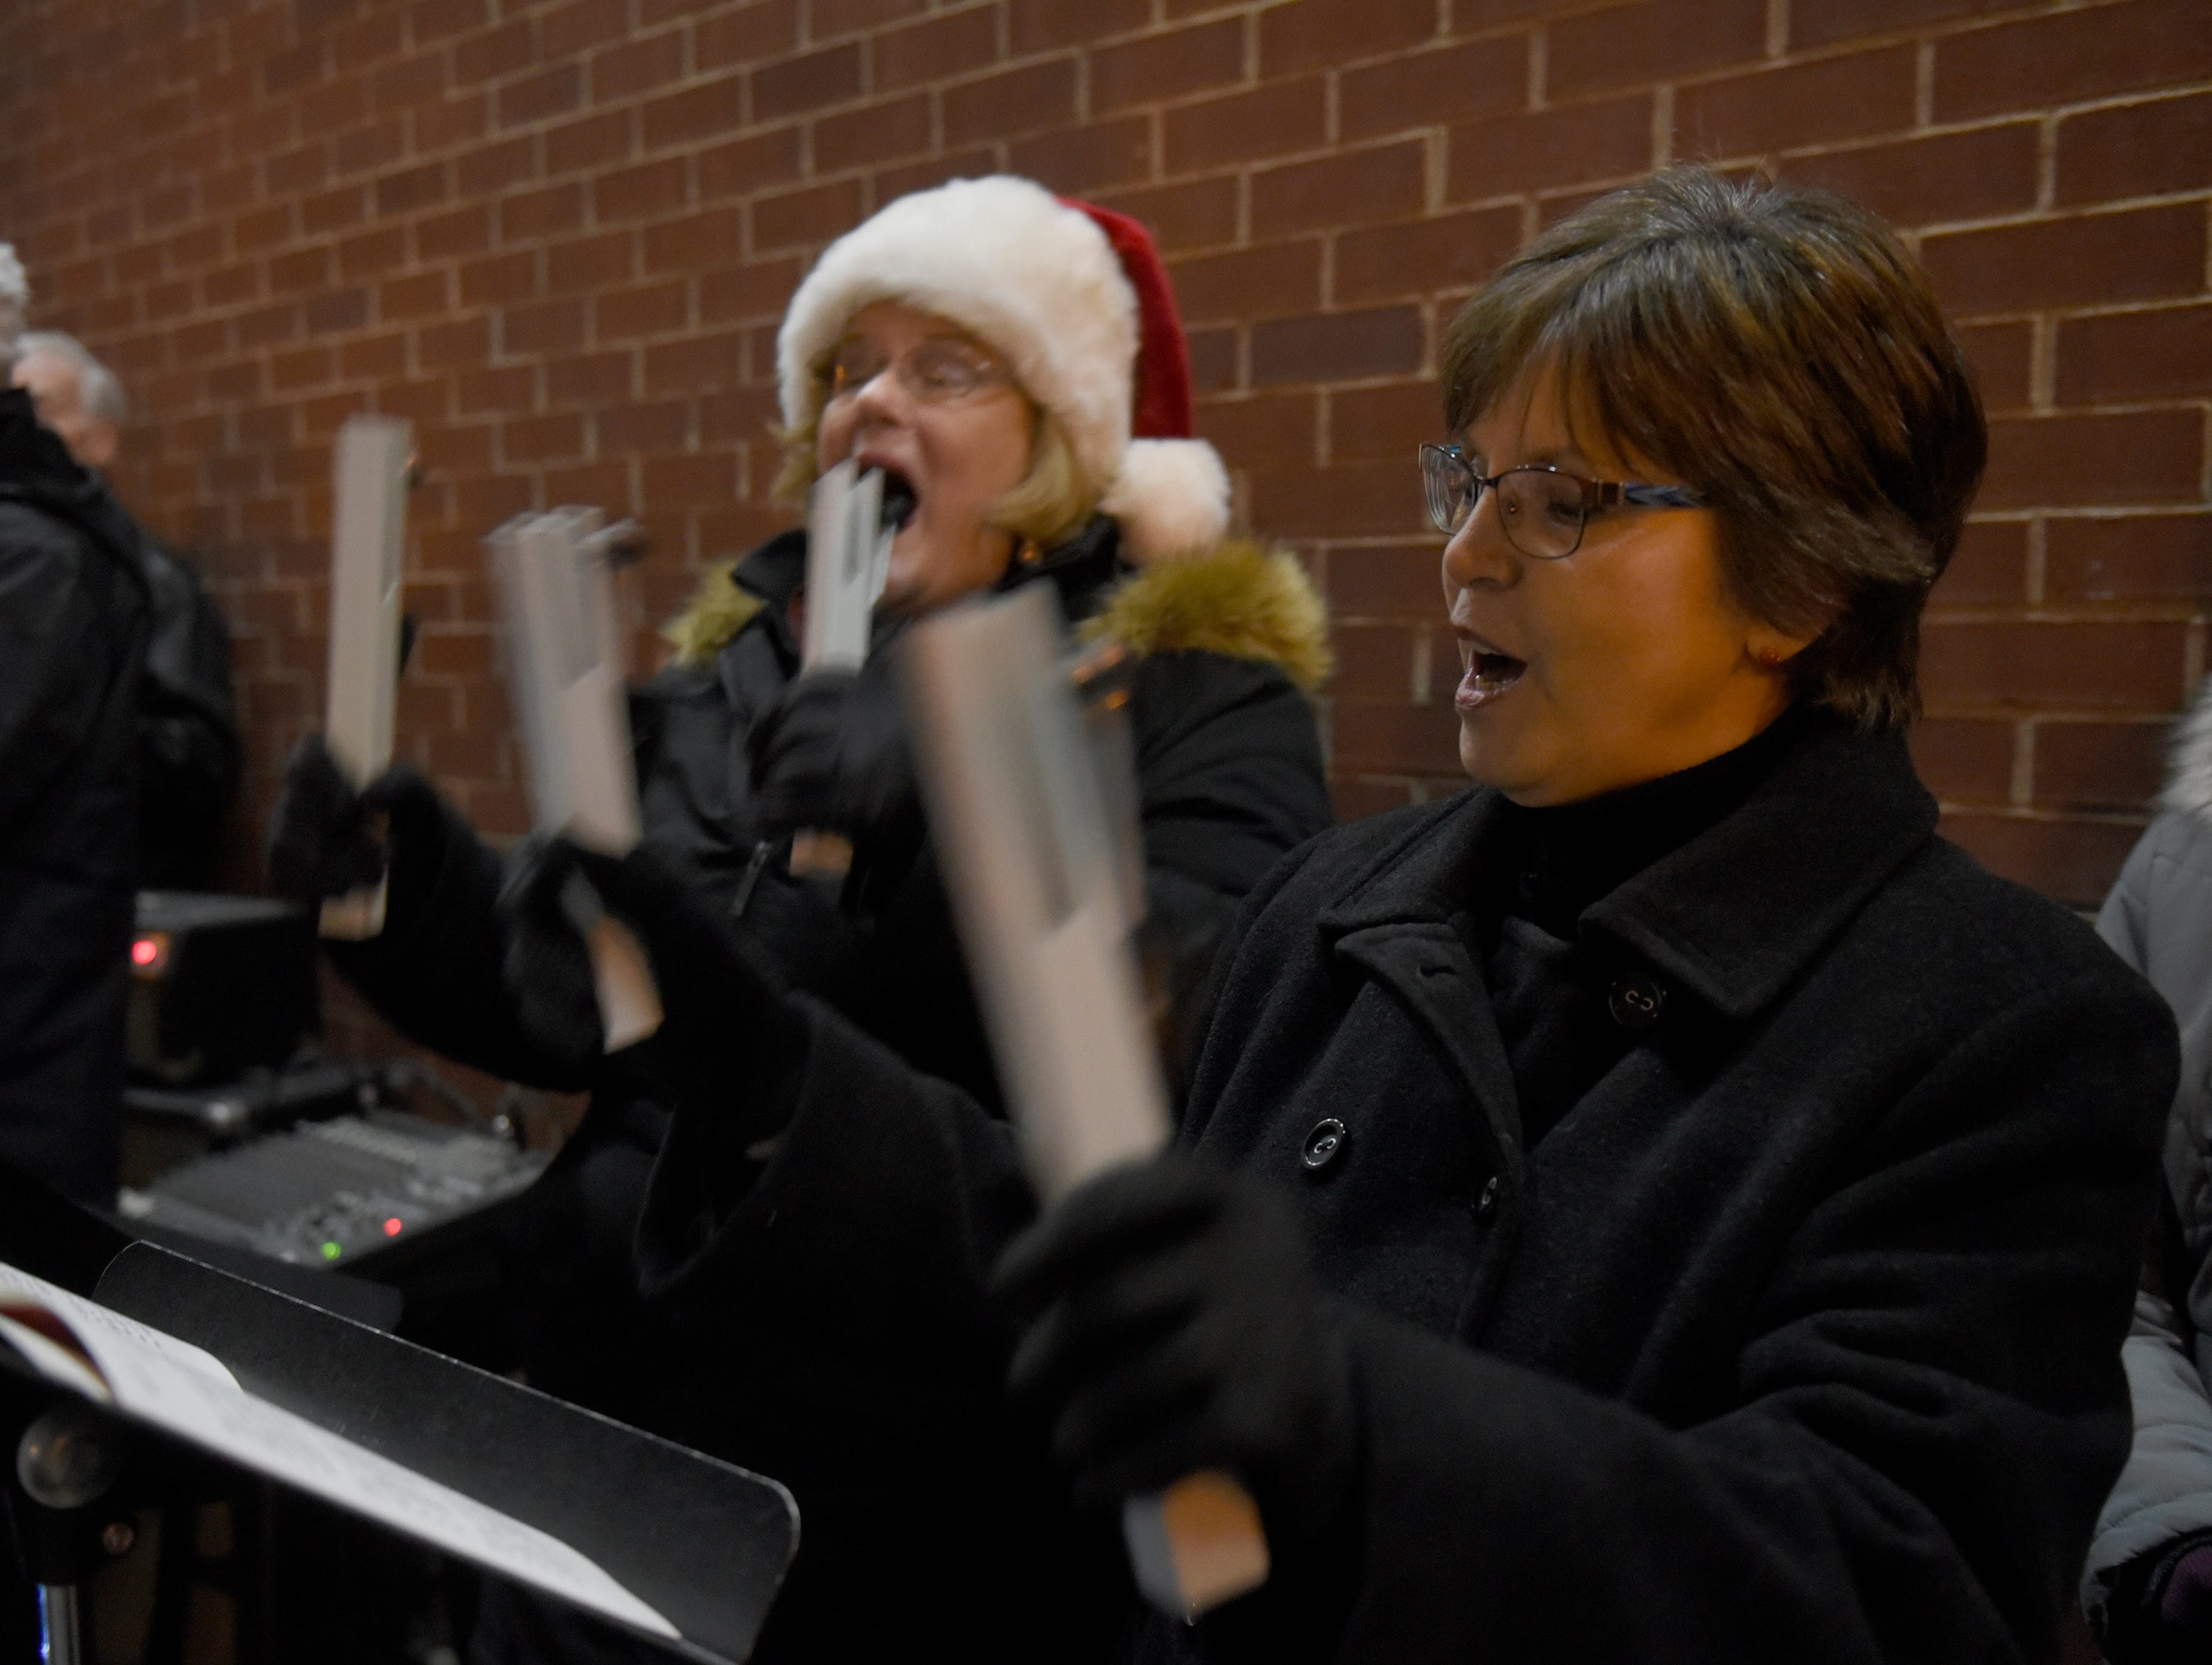 Members of the First Presbyterian Church of Northville sing Christmas Carols before the start of the Holiday Lighted Parade in downtown Northville, Nov. 16, 2018.